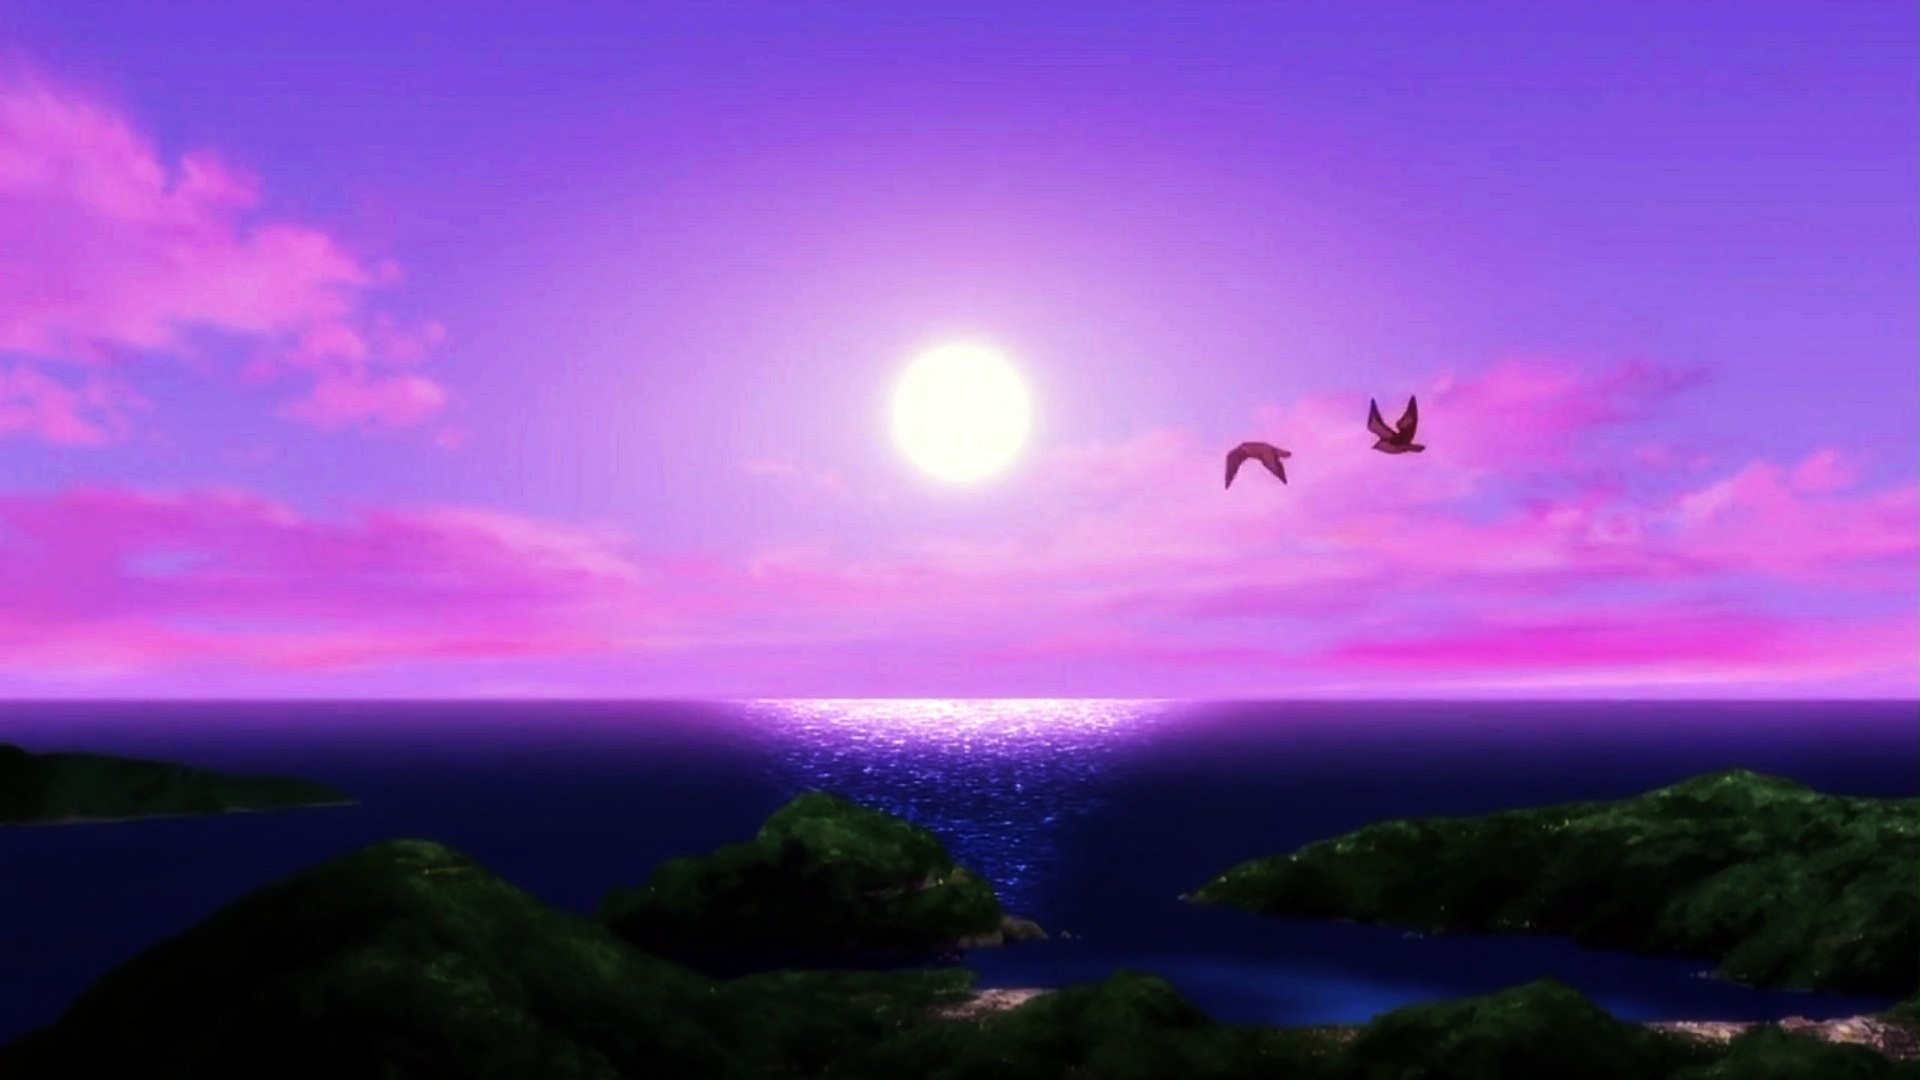 Purple Sunset Ocean Hd Wallpapers Downloand Now 1920x1080